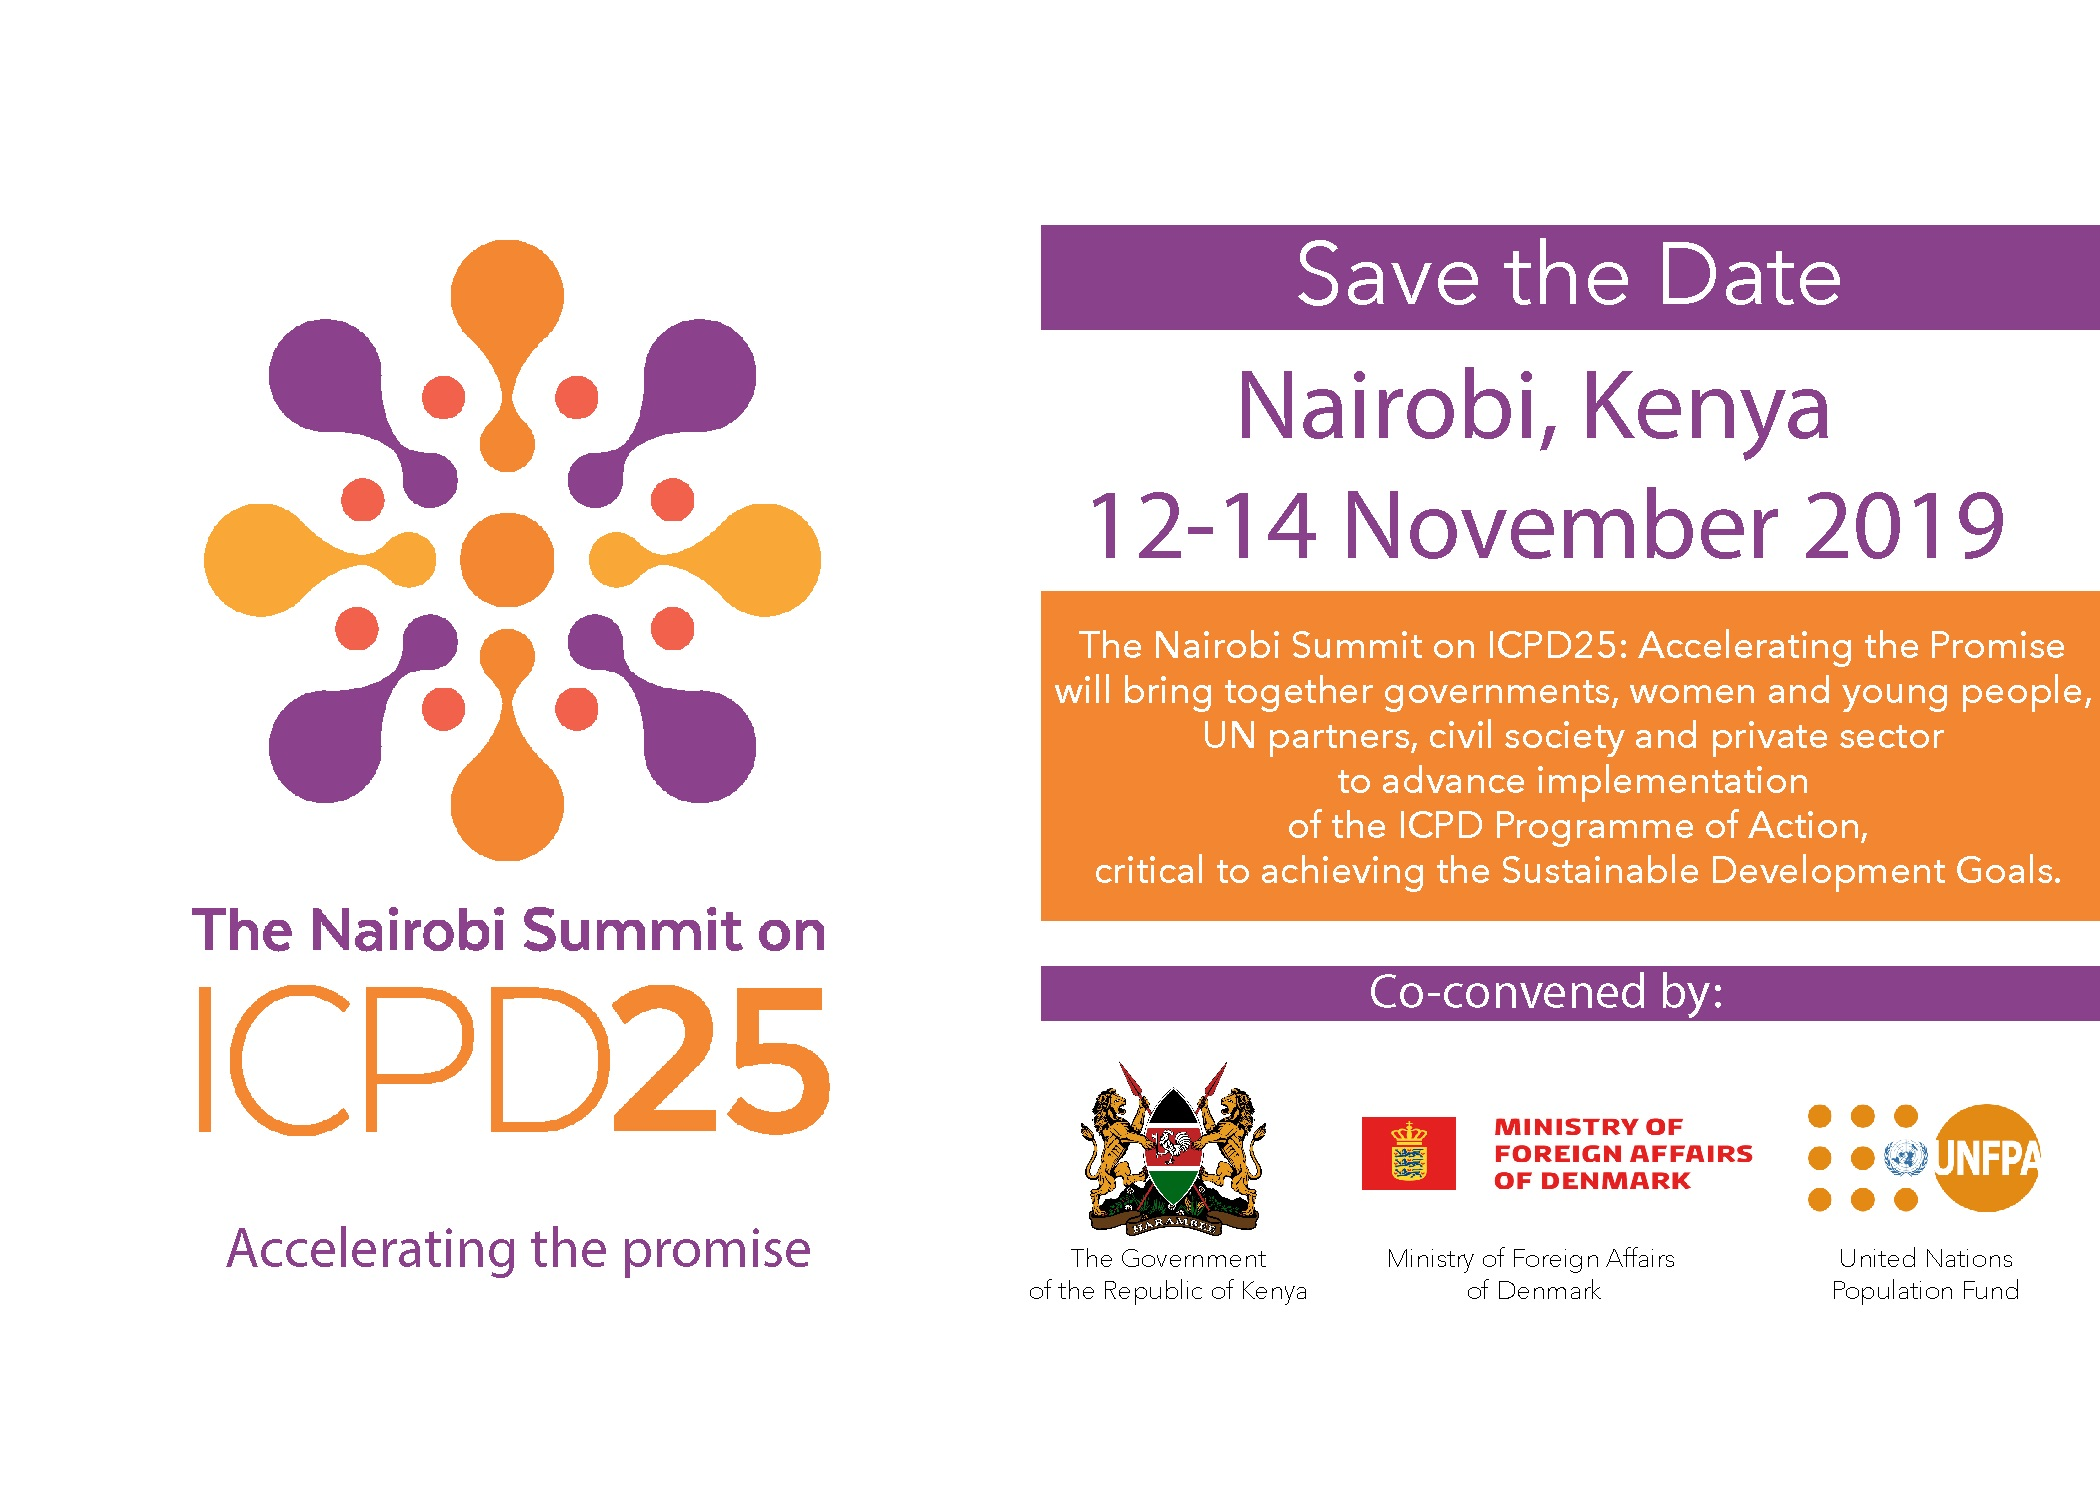 [Image: Countdown 2030 Europe provides inputs to Nairobi Summit Global Commitments]